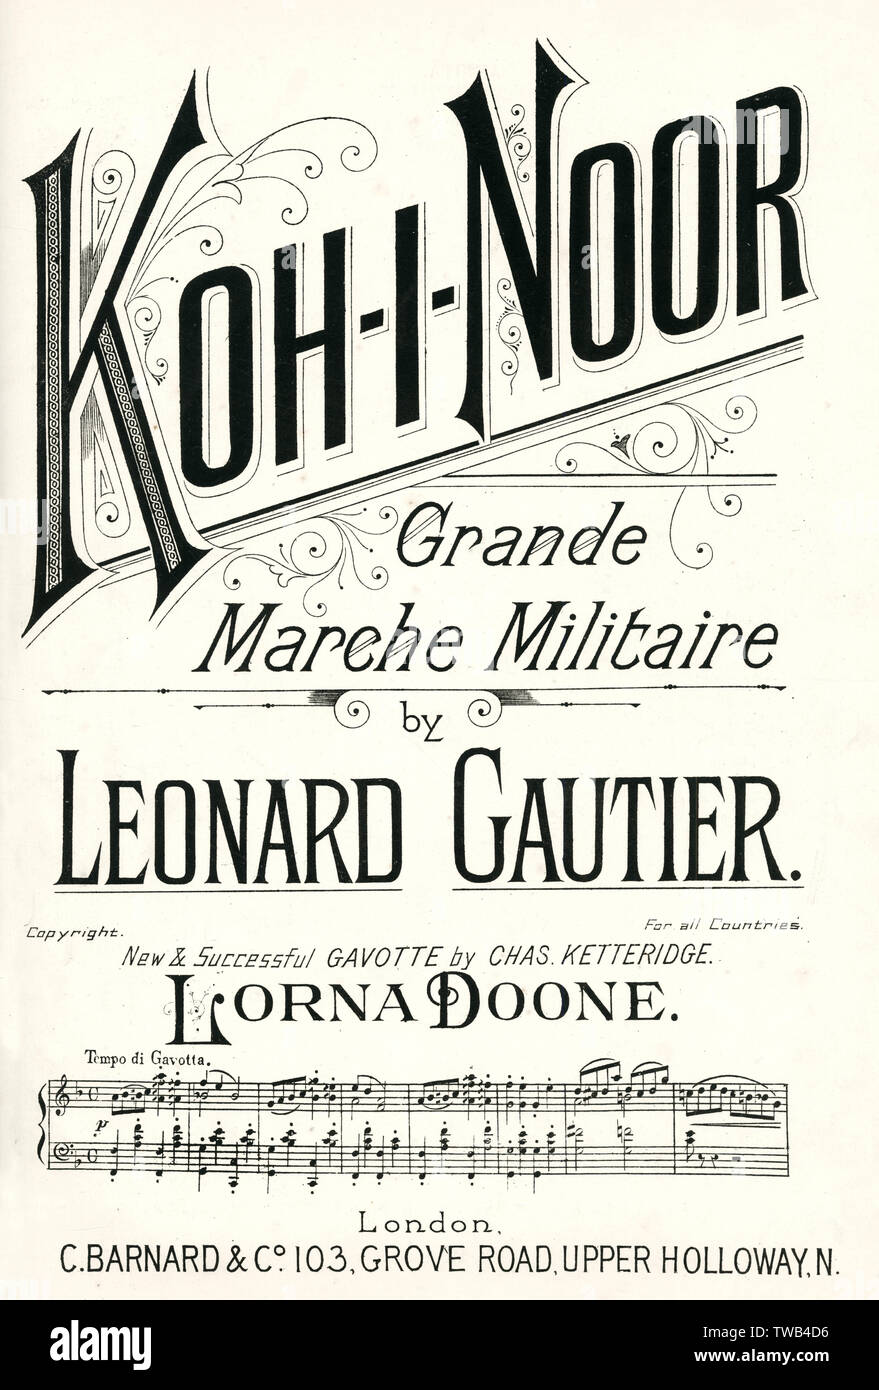 Music cover, Koh-I-Noor, Grande Marche Militaire by Leonard Gautier.      Date: 1900s - Stock Image